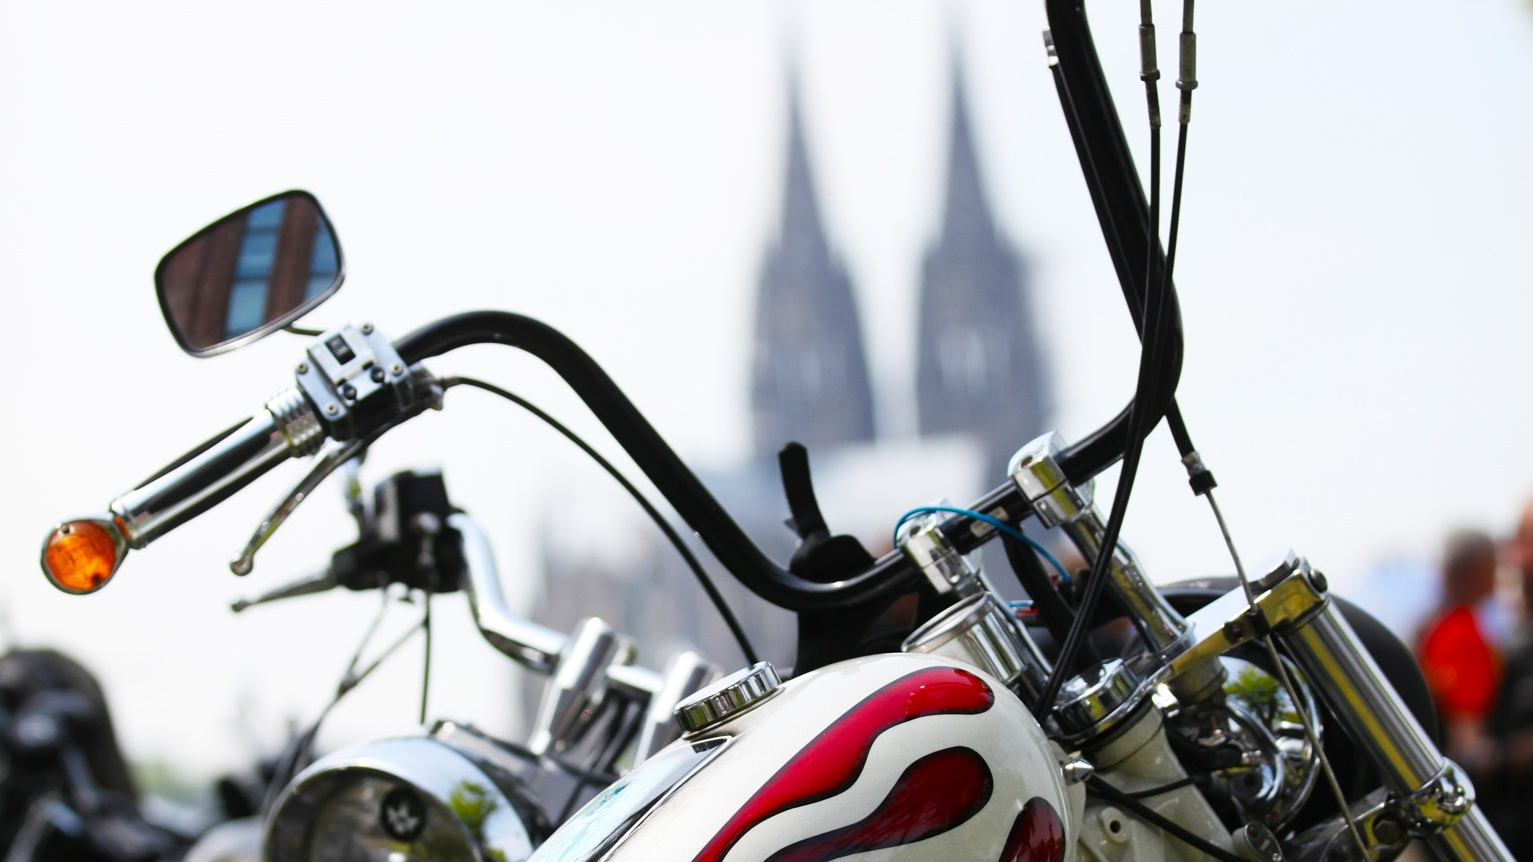 Absage_Harley_Dome_Cologne